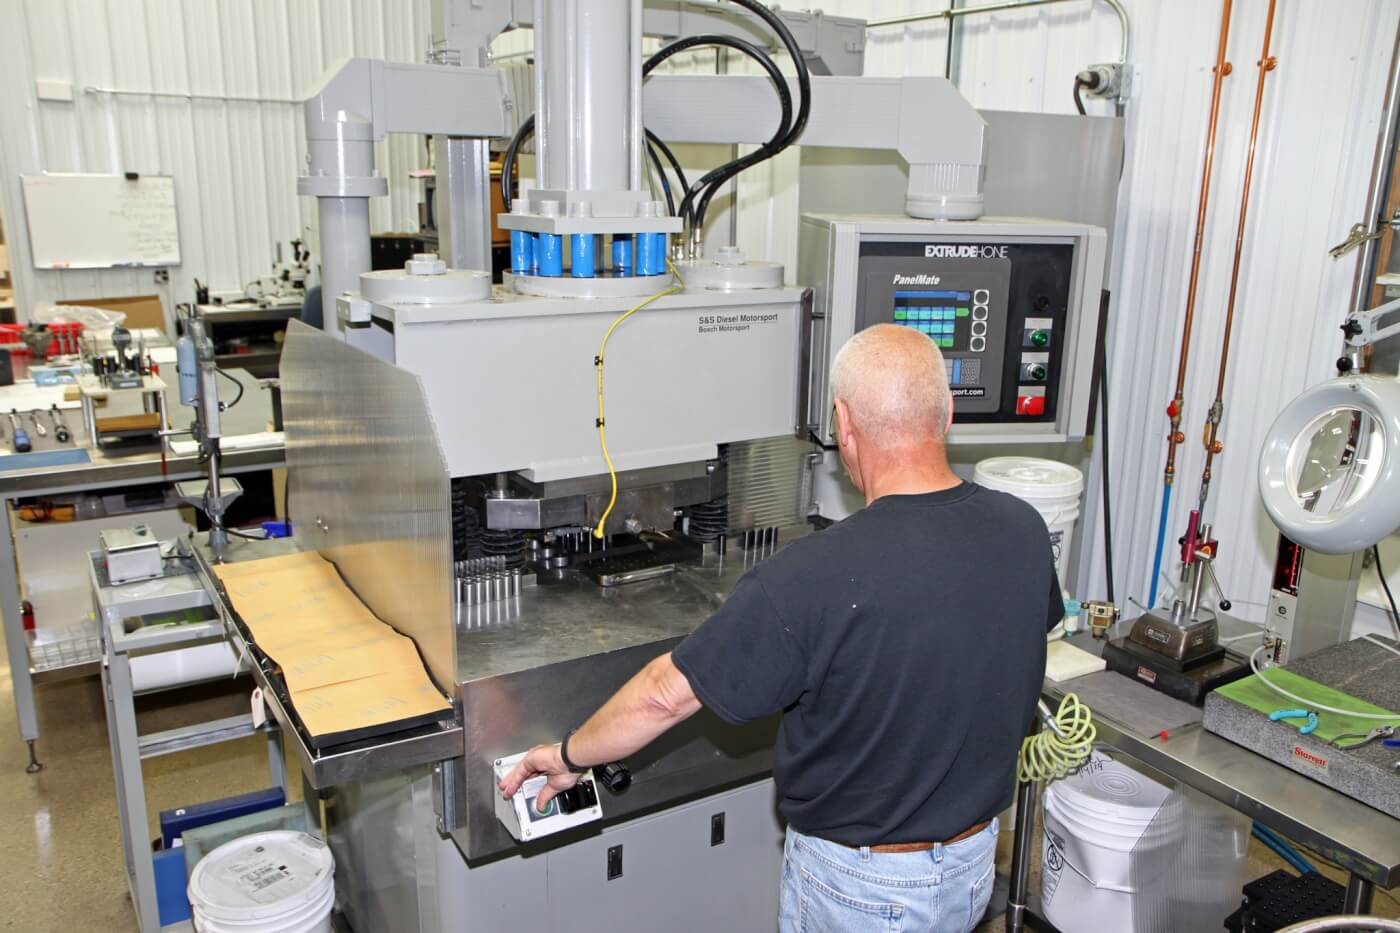 10. Greg Spoolstra operates the AFM machine to show us the process S&S nozzles go through.